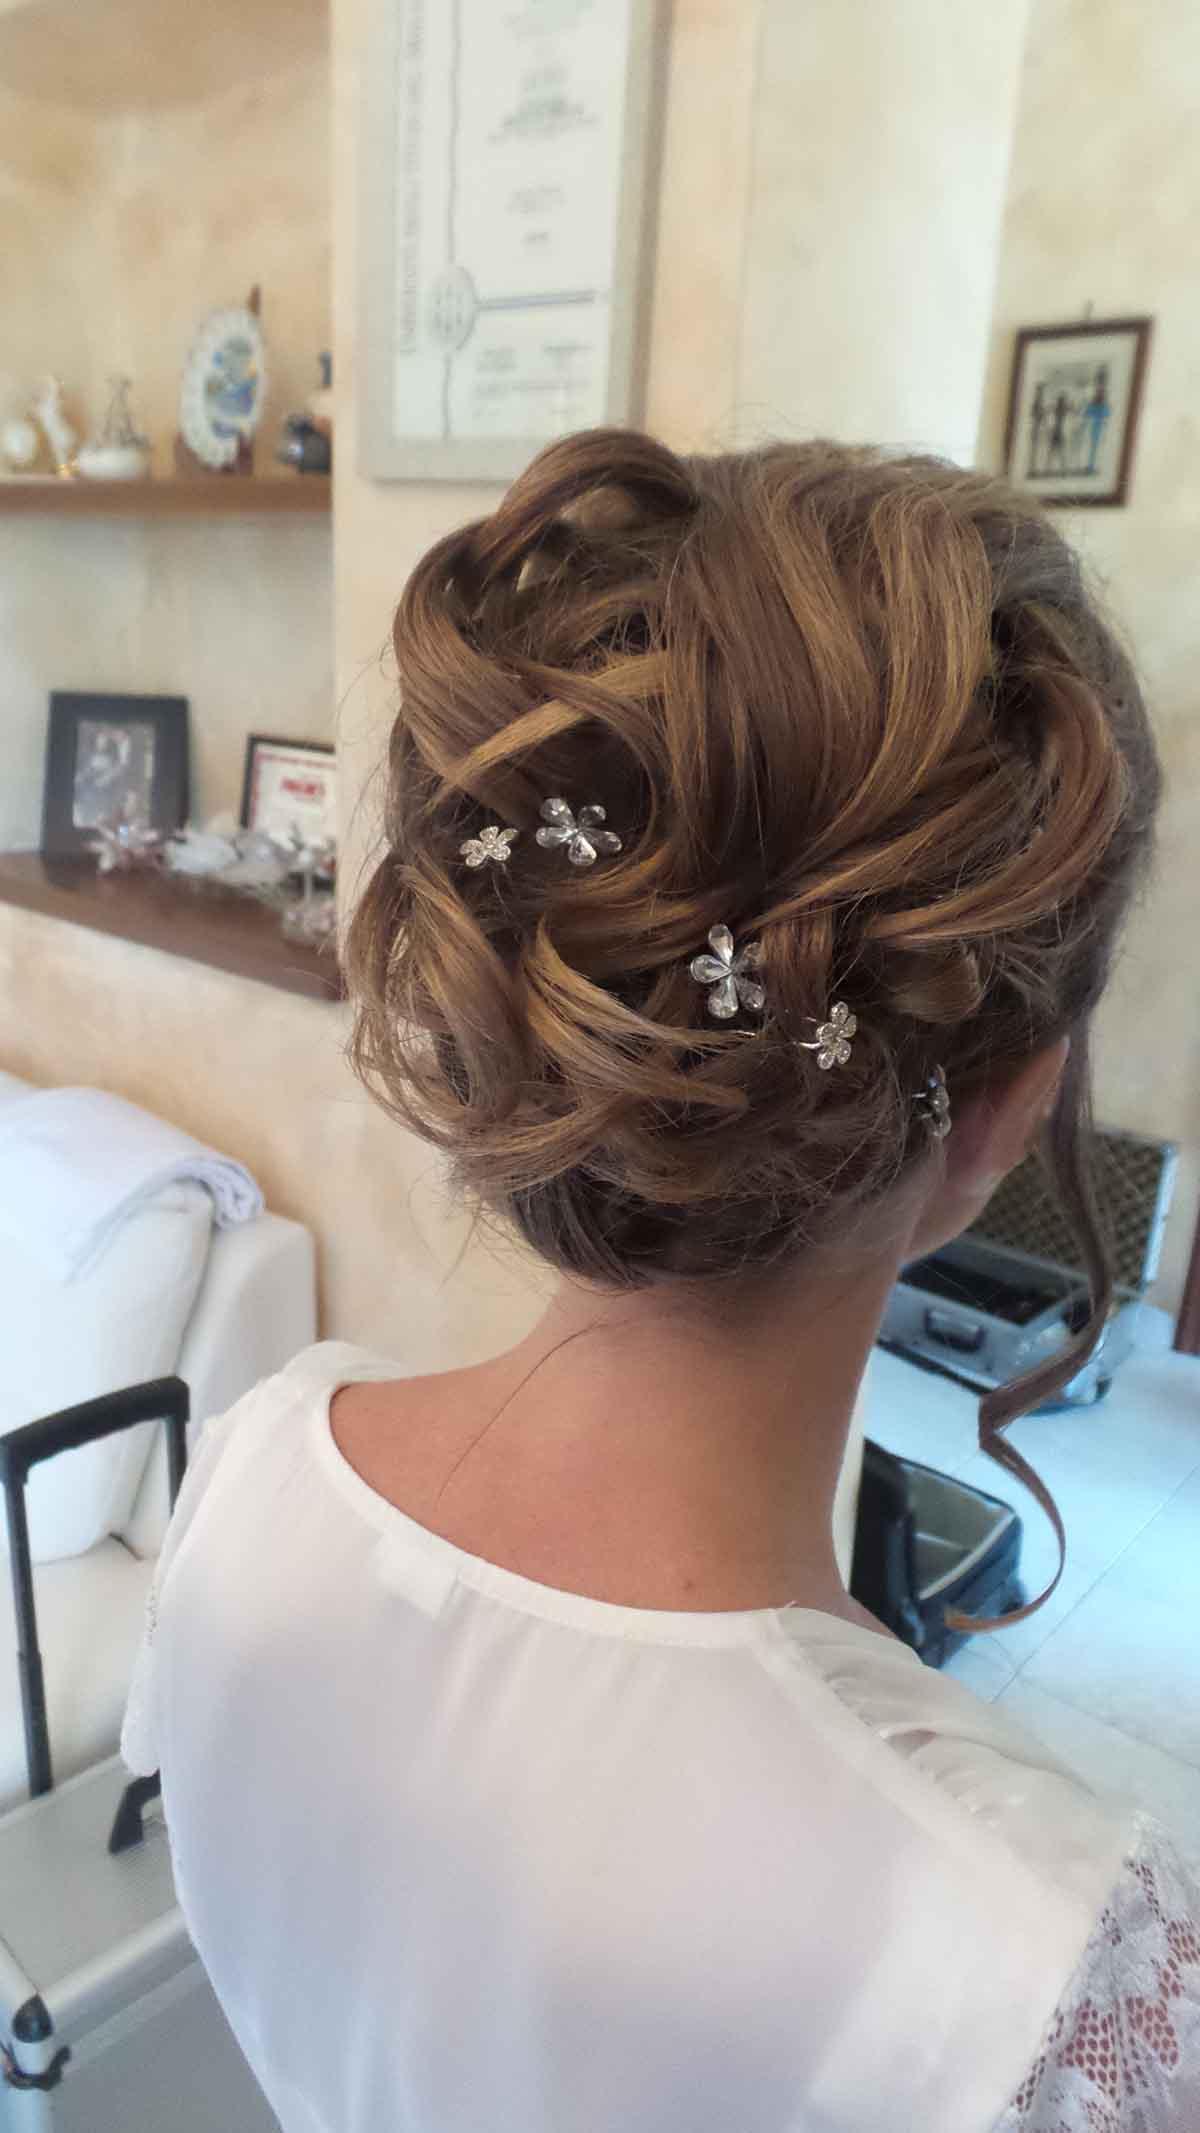 Gallery sposa10